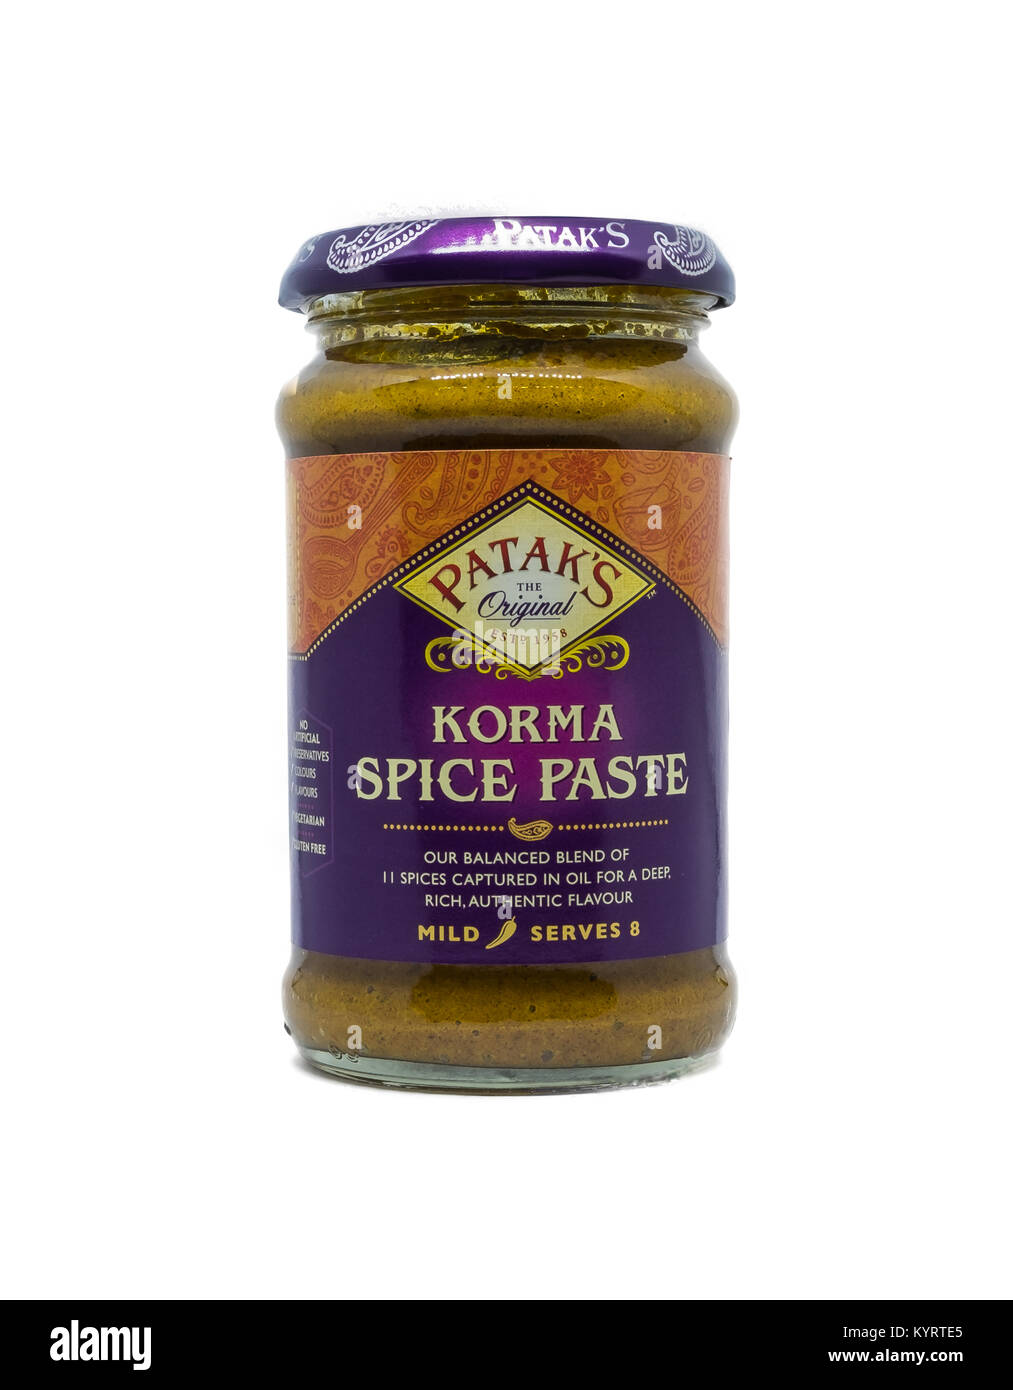 Largs, Scotland, UK - January 14, 2018: A popular branded jar of Patak's Korma Curry paste on white background - Stock Image